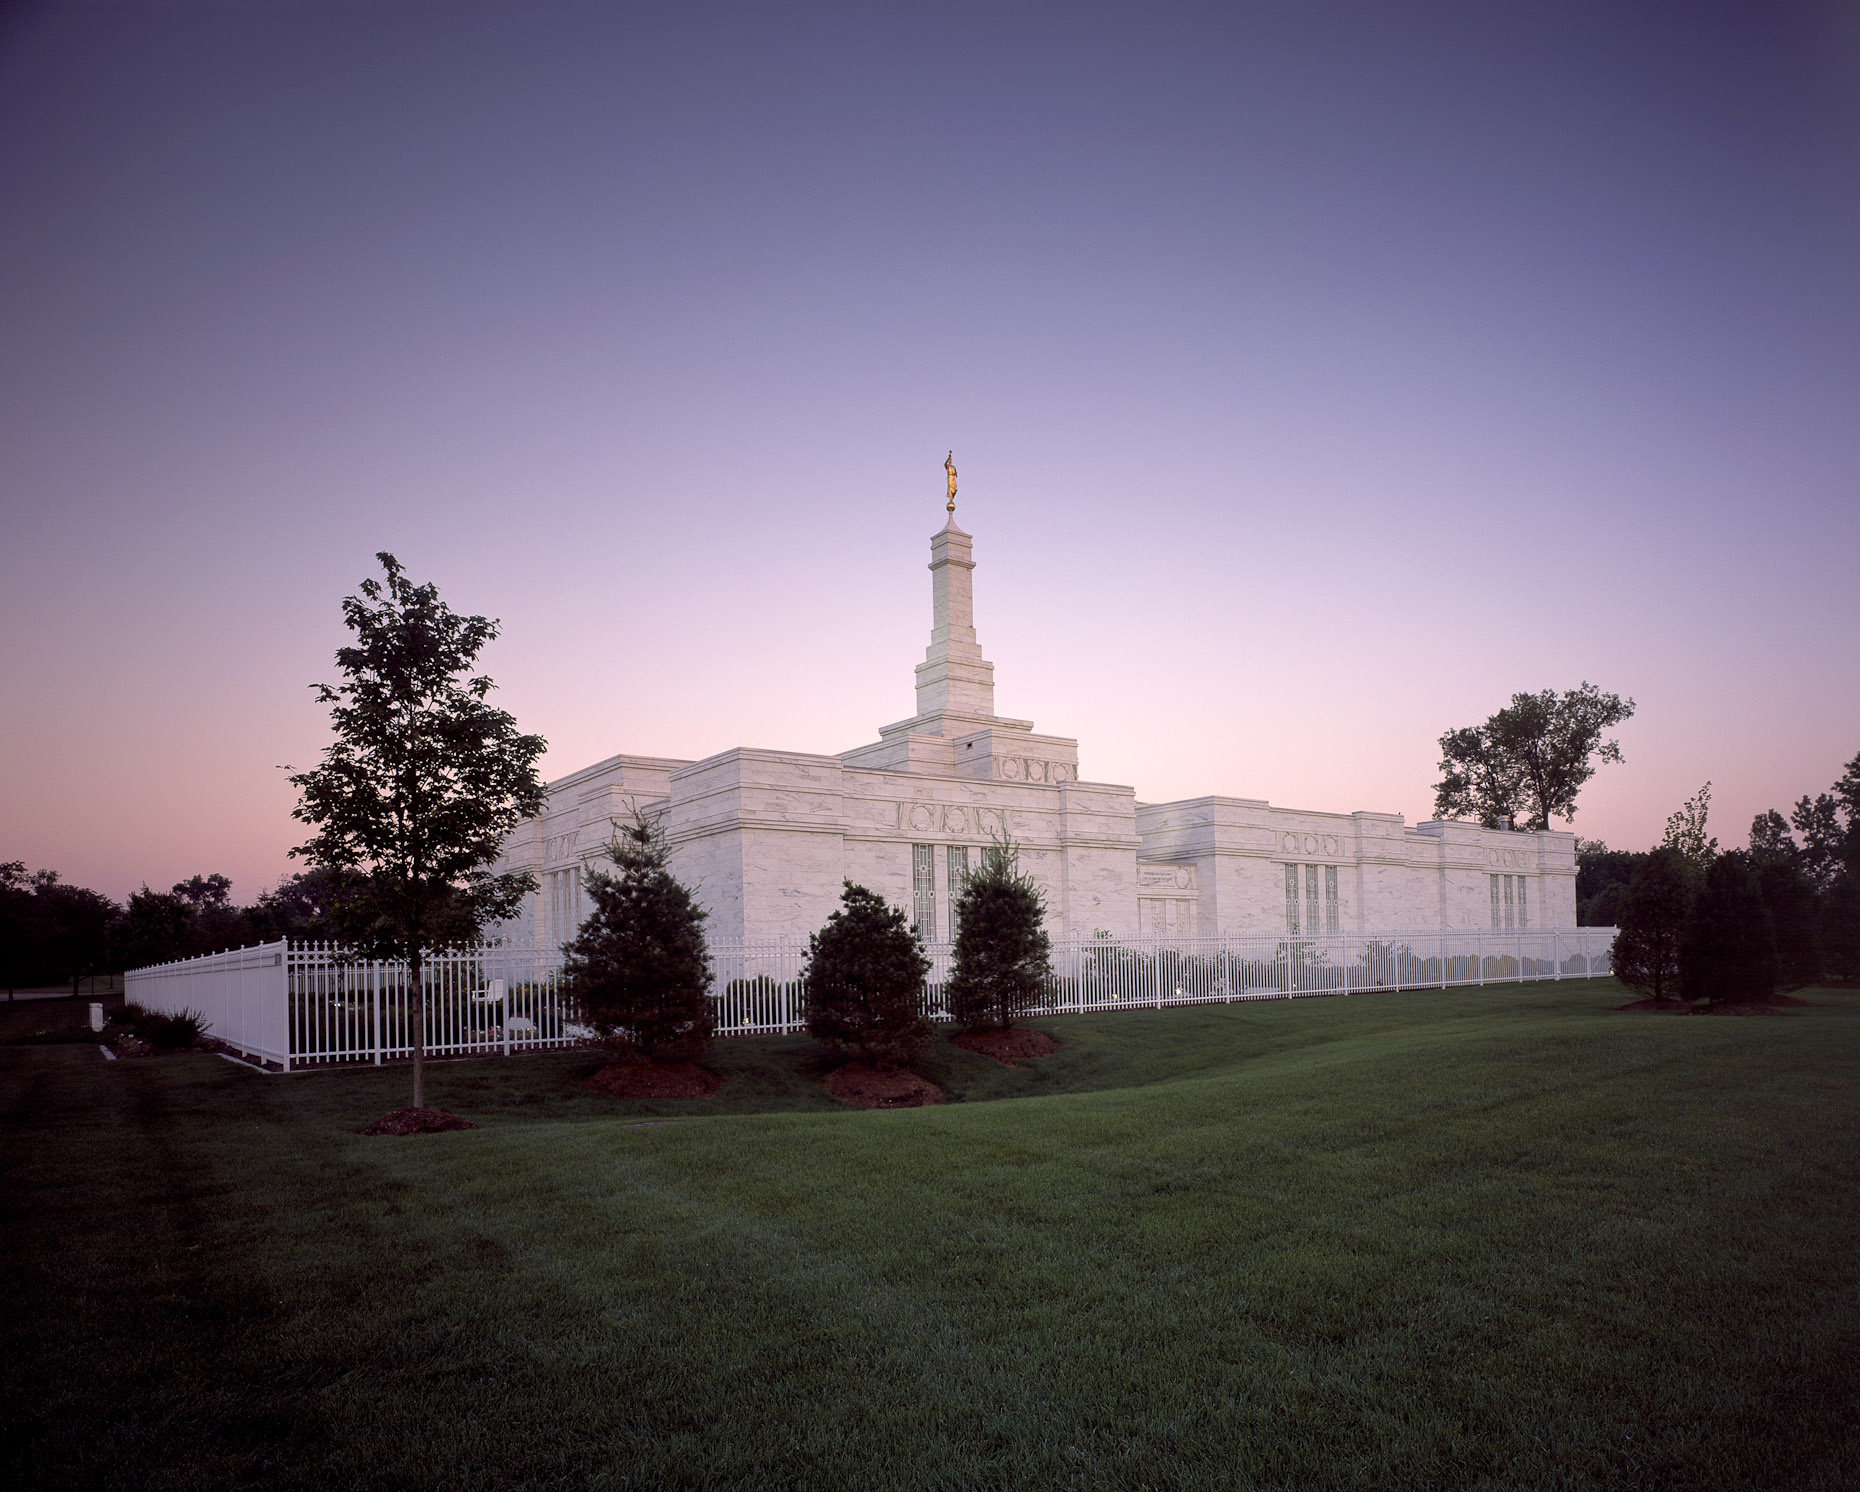 Mormon Temple by Corna-Kokosing photographed by BRad Feinknopf based in Columbus, Ohio